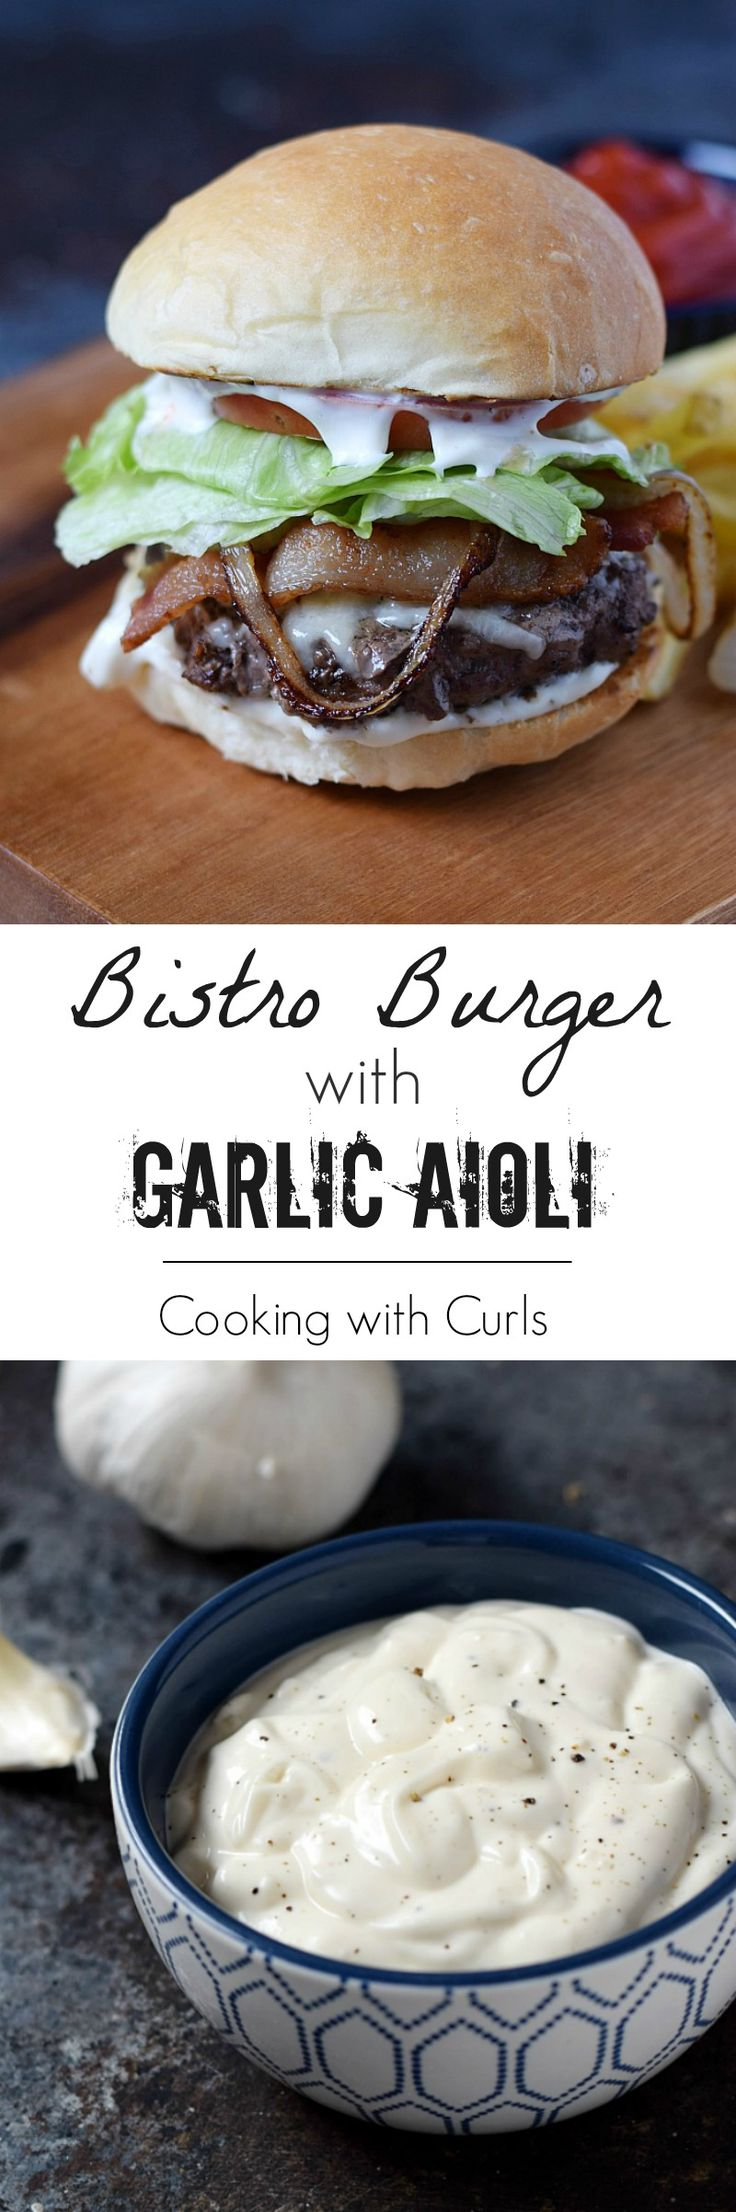 This delicious Bistro Burger is topped with cheddar cheese, bacon, caramelized onions, and and amazing garlic aioli sauce, and has become my absolute favorite burger | cookingwithcurls.com